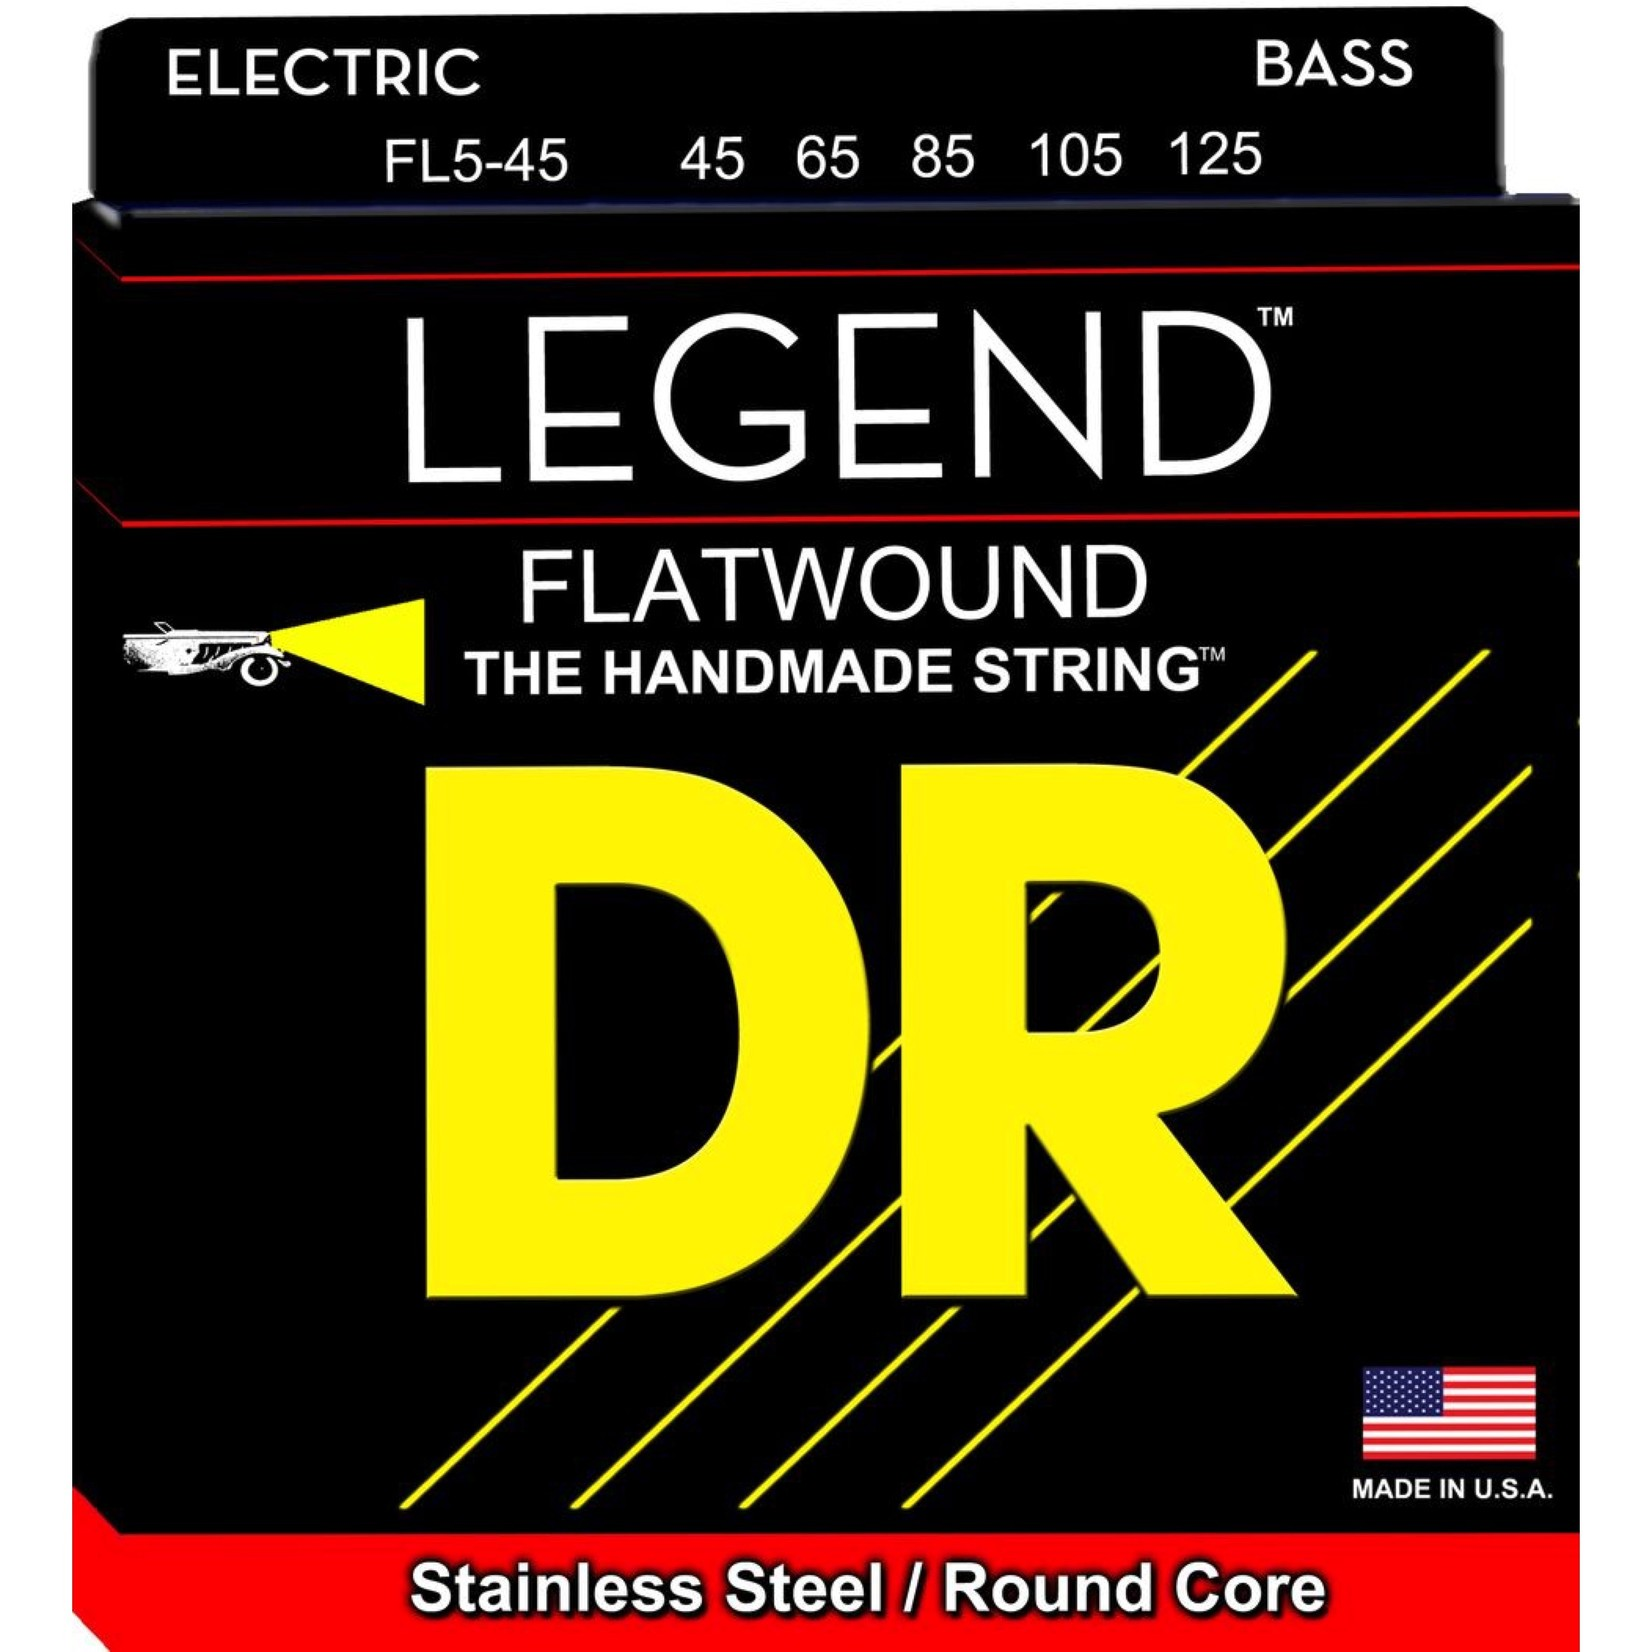 DR Strings DR Strings FL5-45 Legend Flatwound 45-125 Medium 5-String, Stainless Steel / Round Core